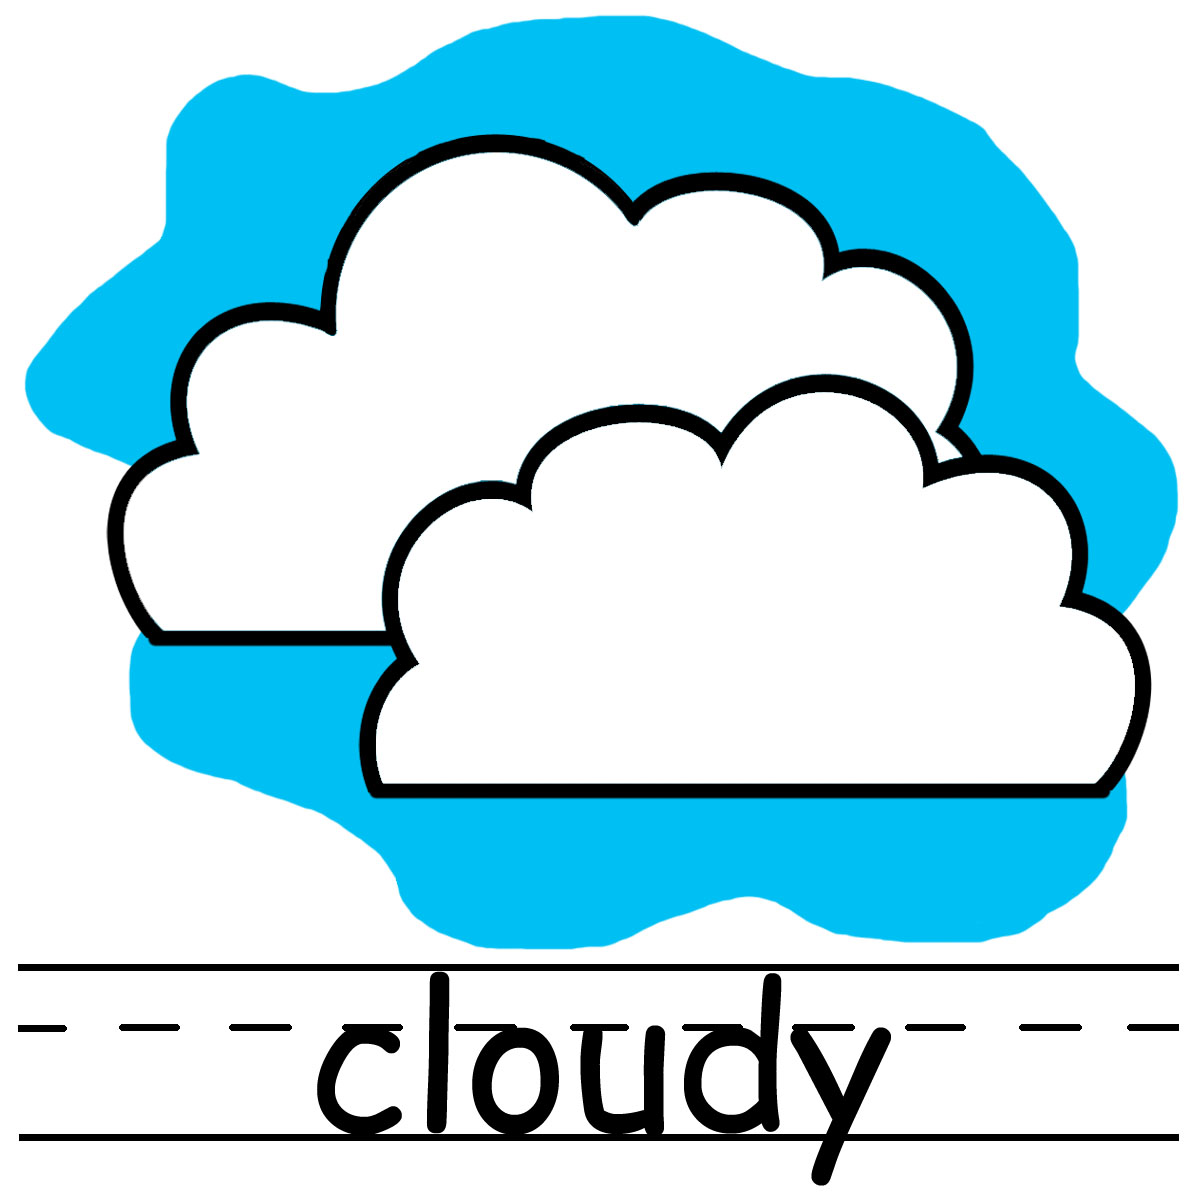 Cloudy Weather Clipart Clipart Panda Fre-Cloudy Weather Clipart Clipart Panda Free Clipart Images-10